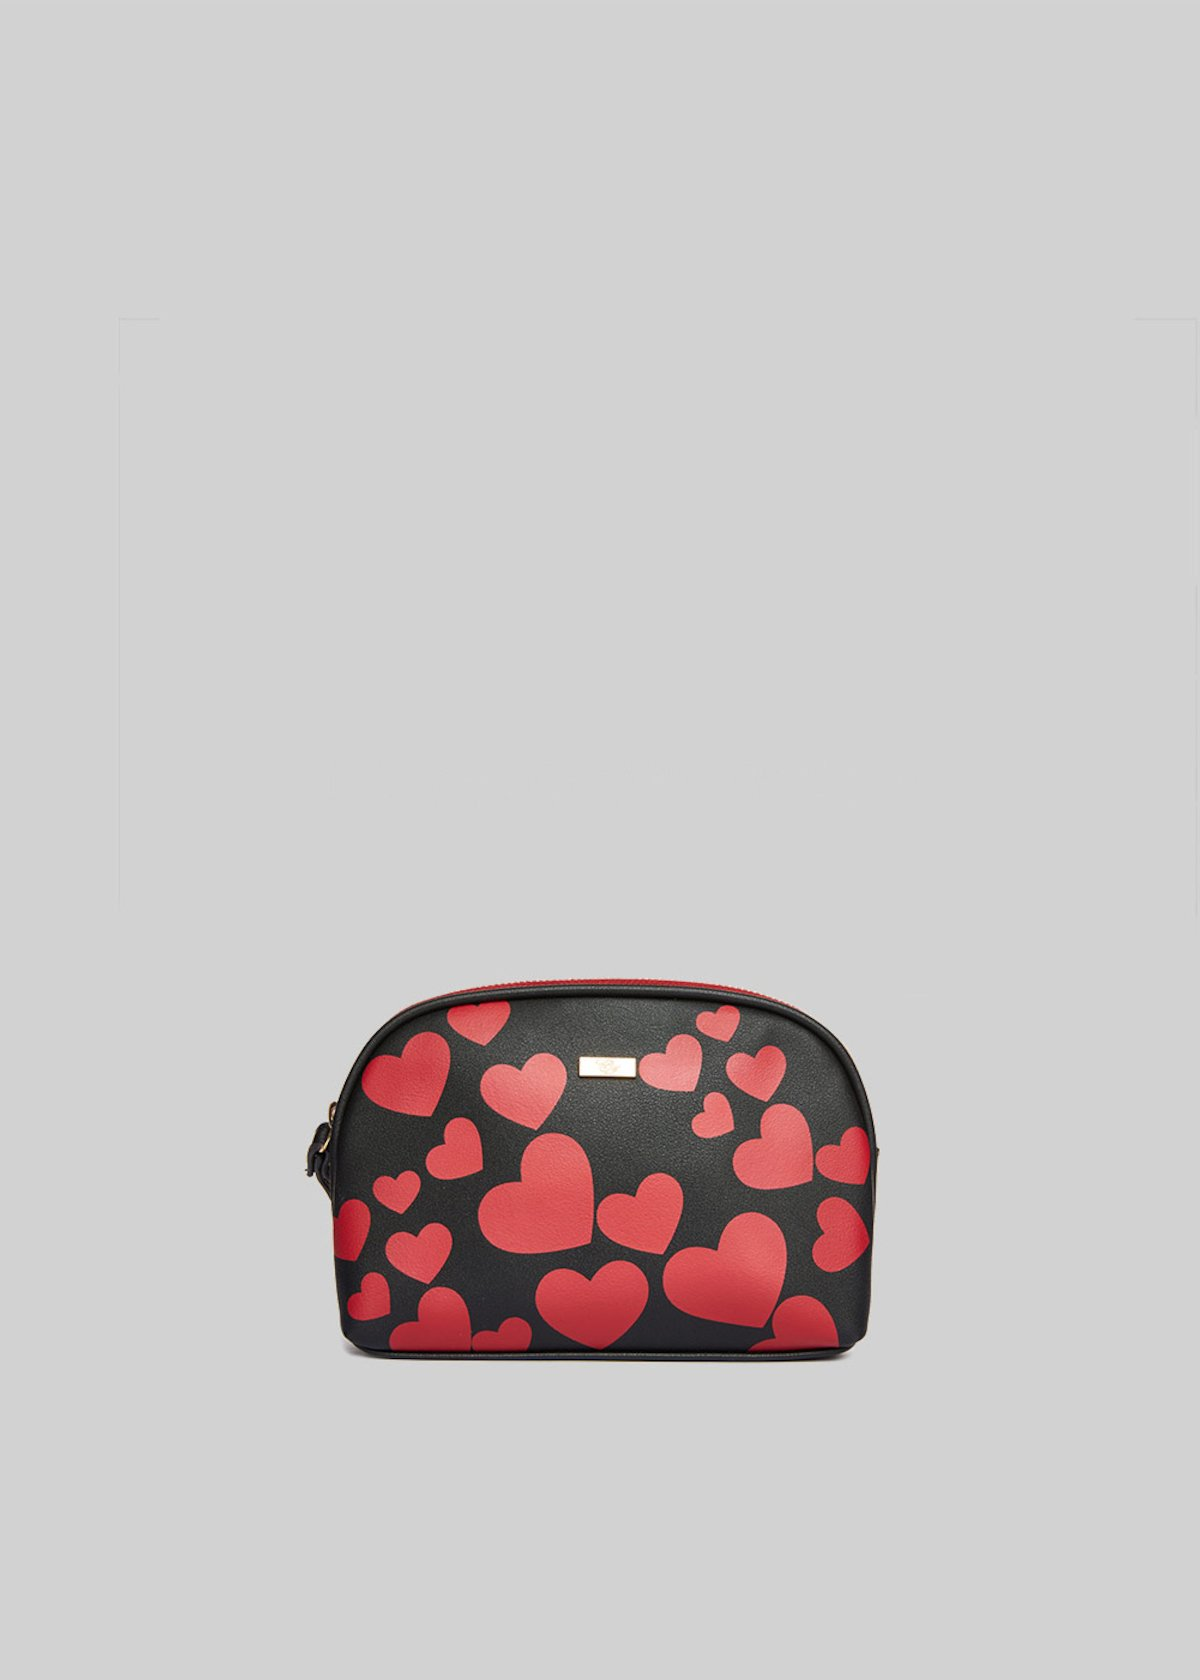 Faux leather Beauty Benny with heart print - Black / Chili / Fantasia